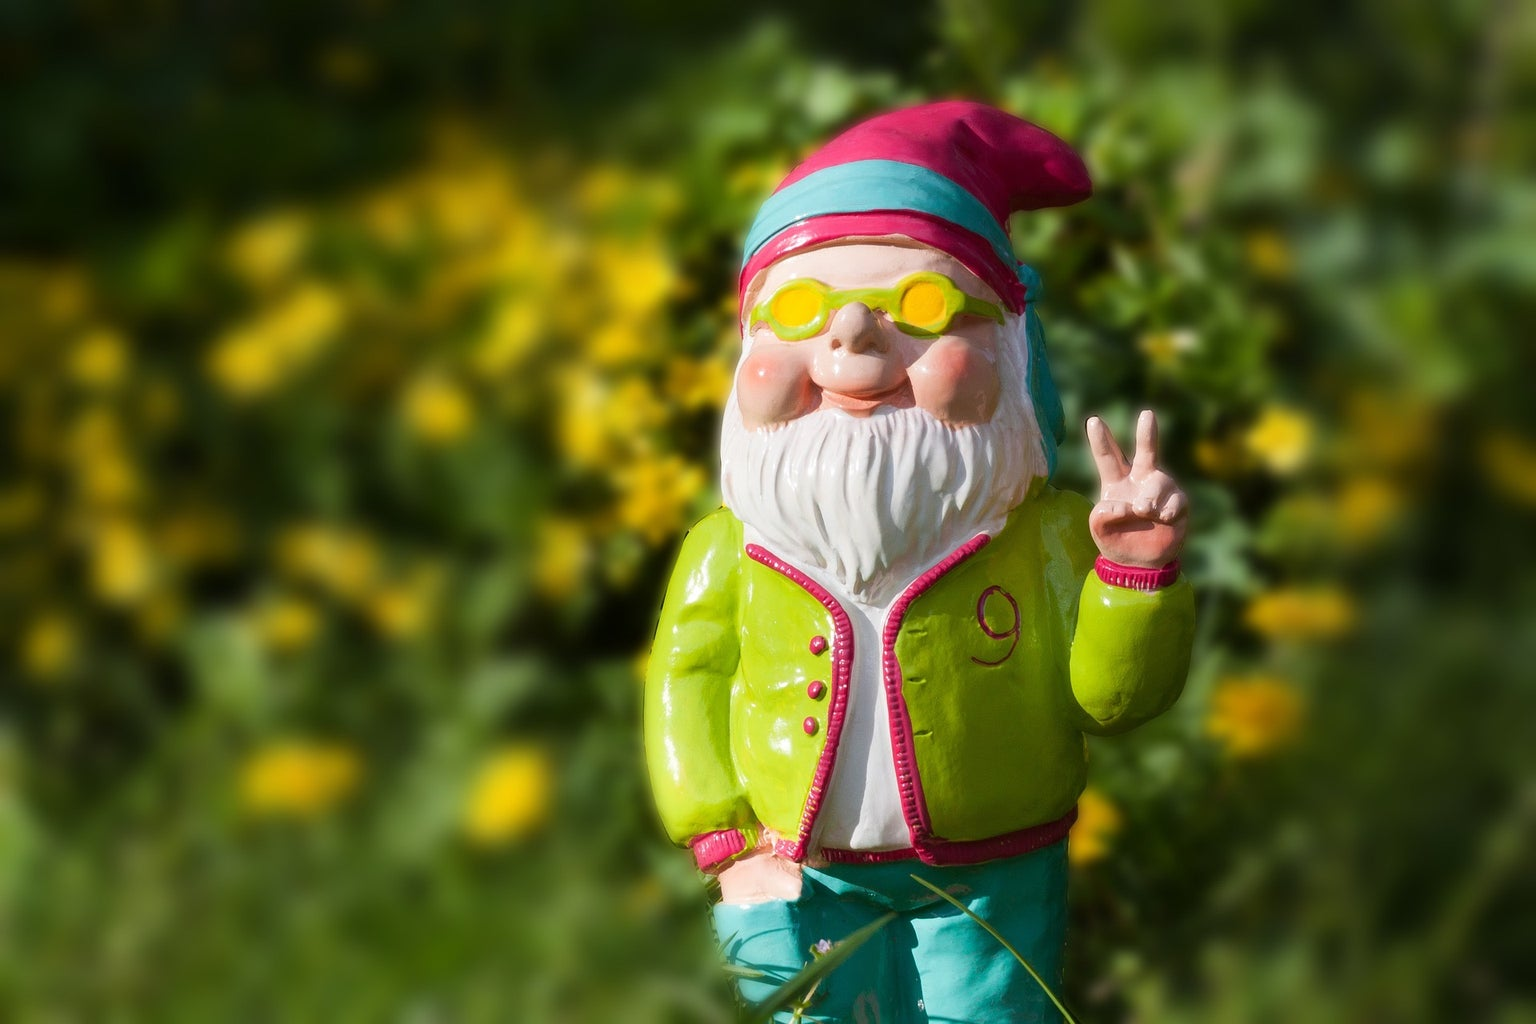 May Your Garden Bring You Much Luck and Joy!